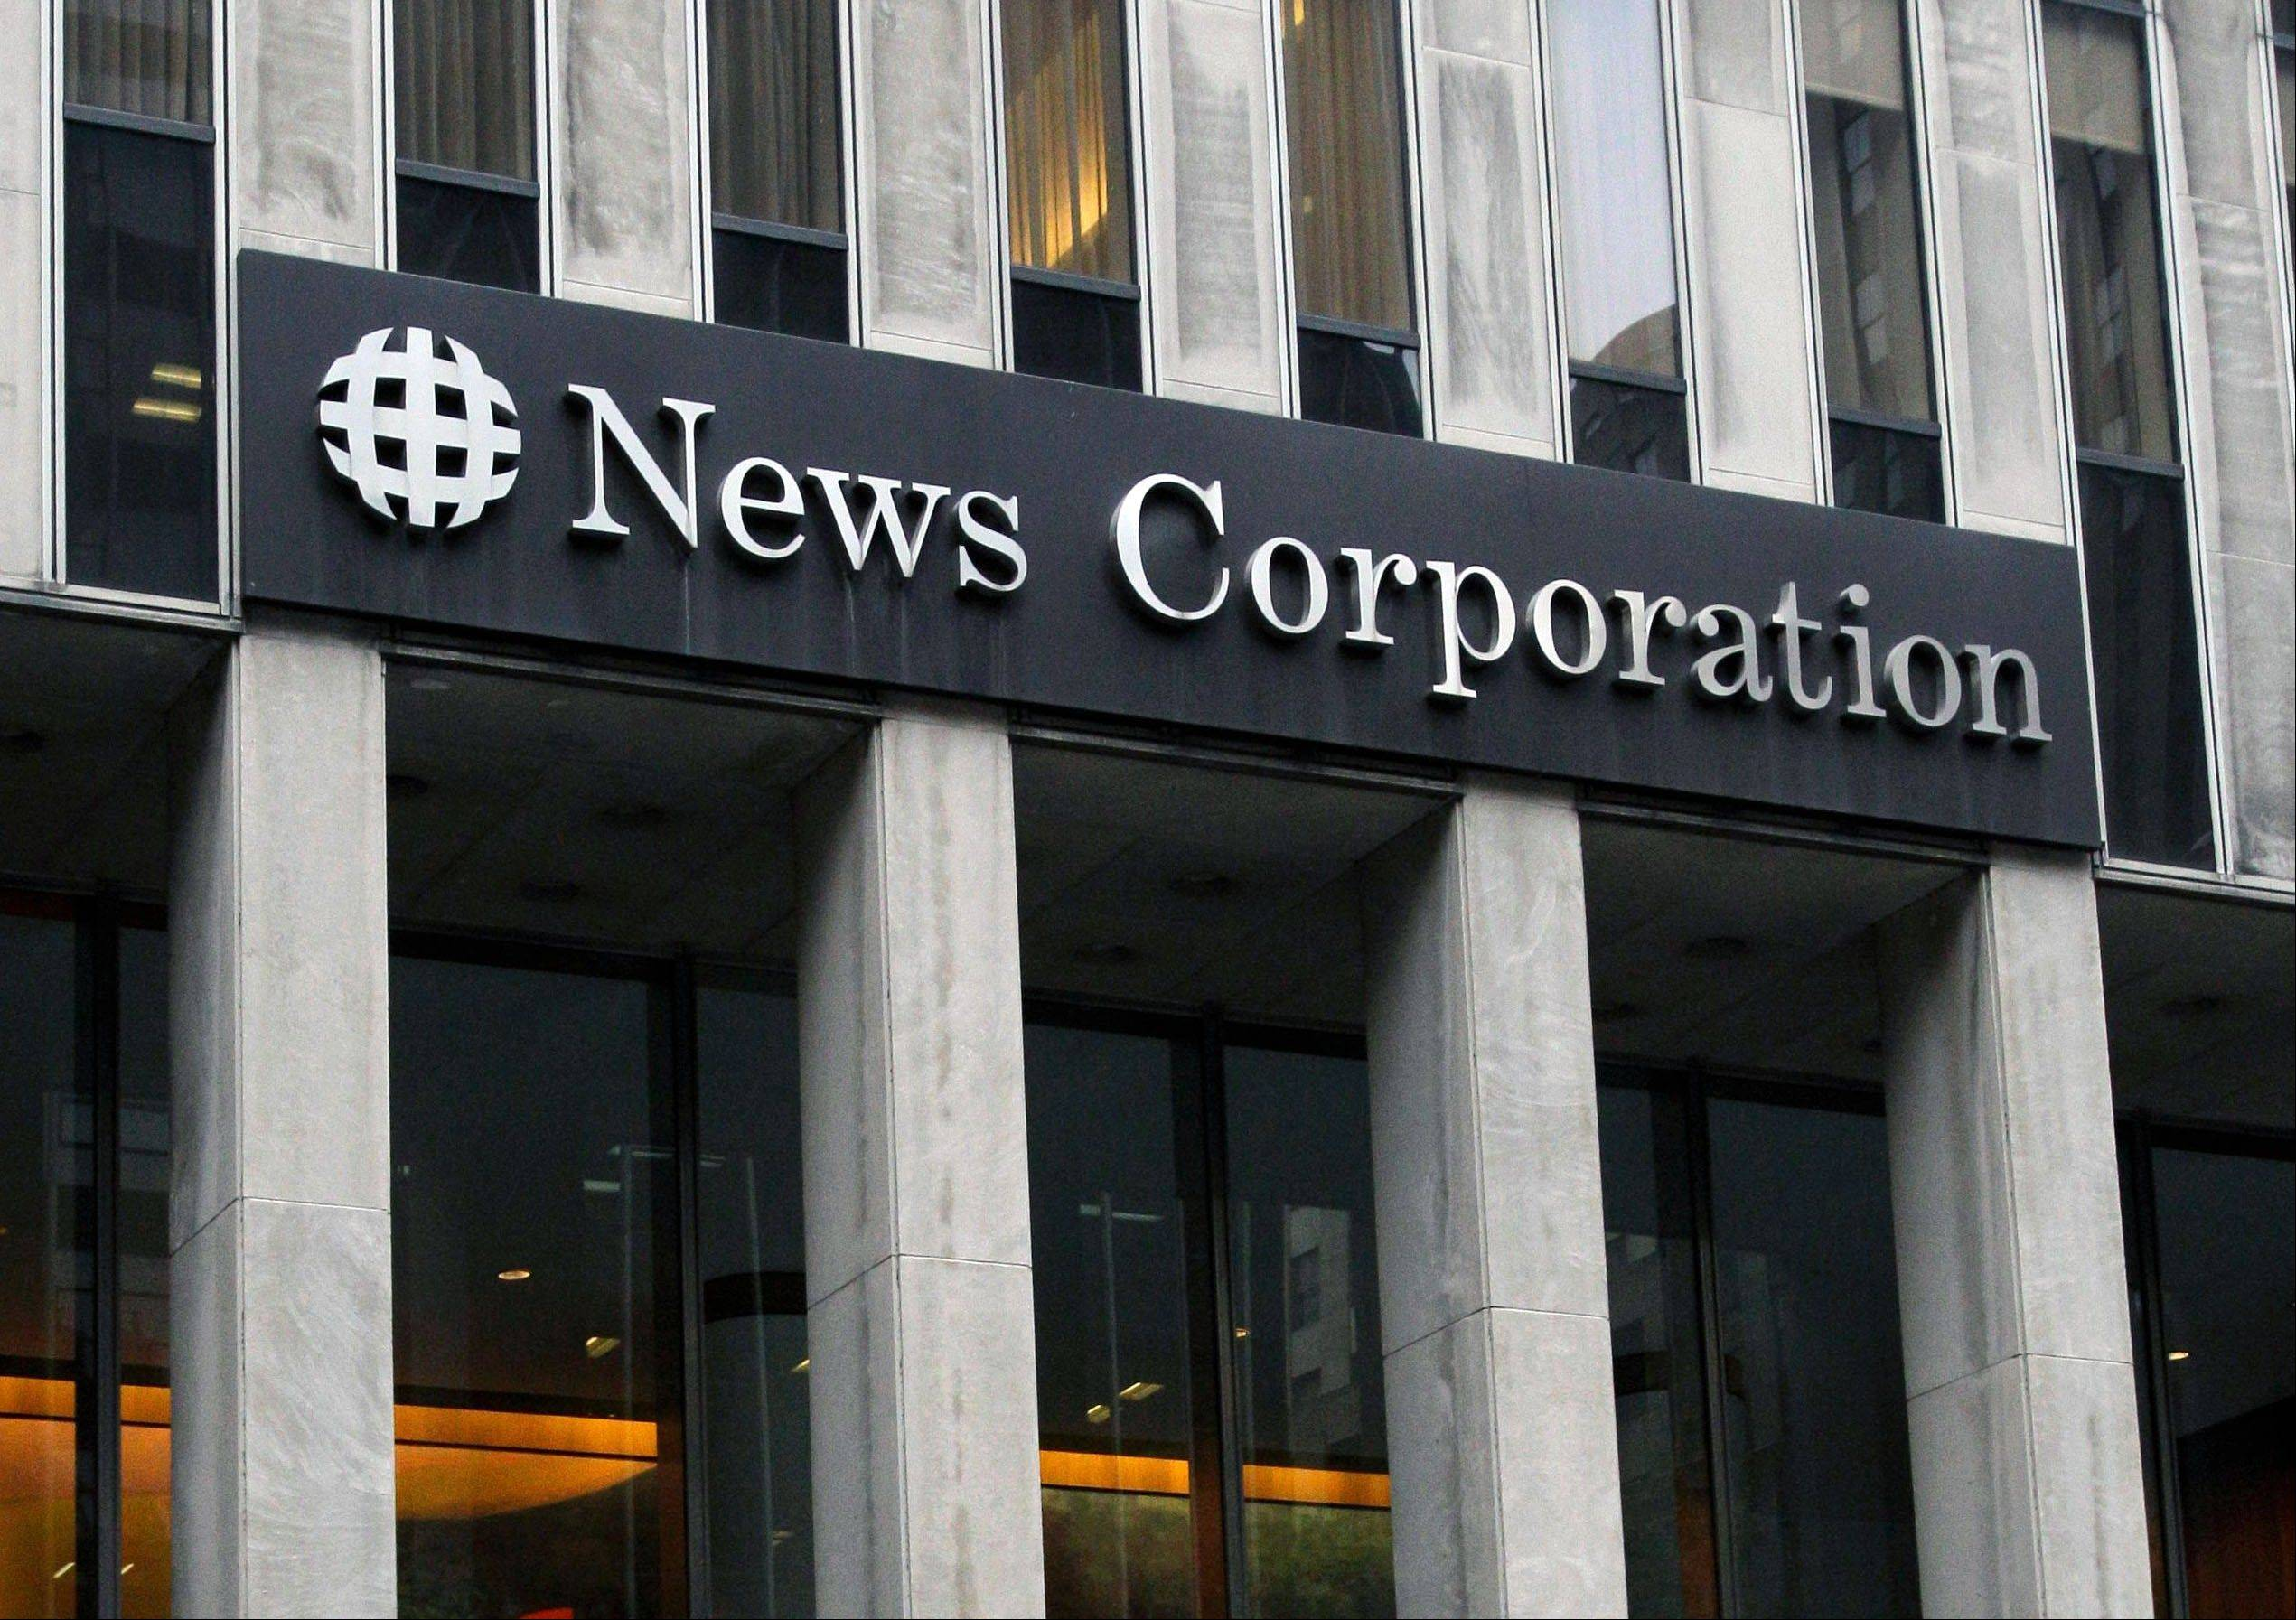 News Corp. said Tuesday that it expects to complete the separation of its entertainment and publishing businesses on June 28.